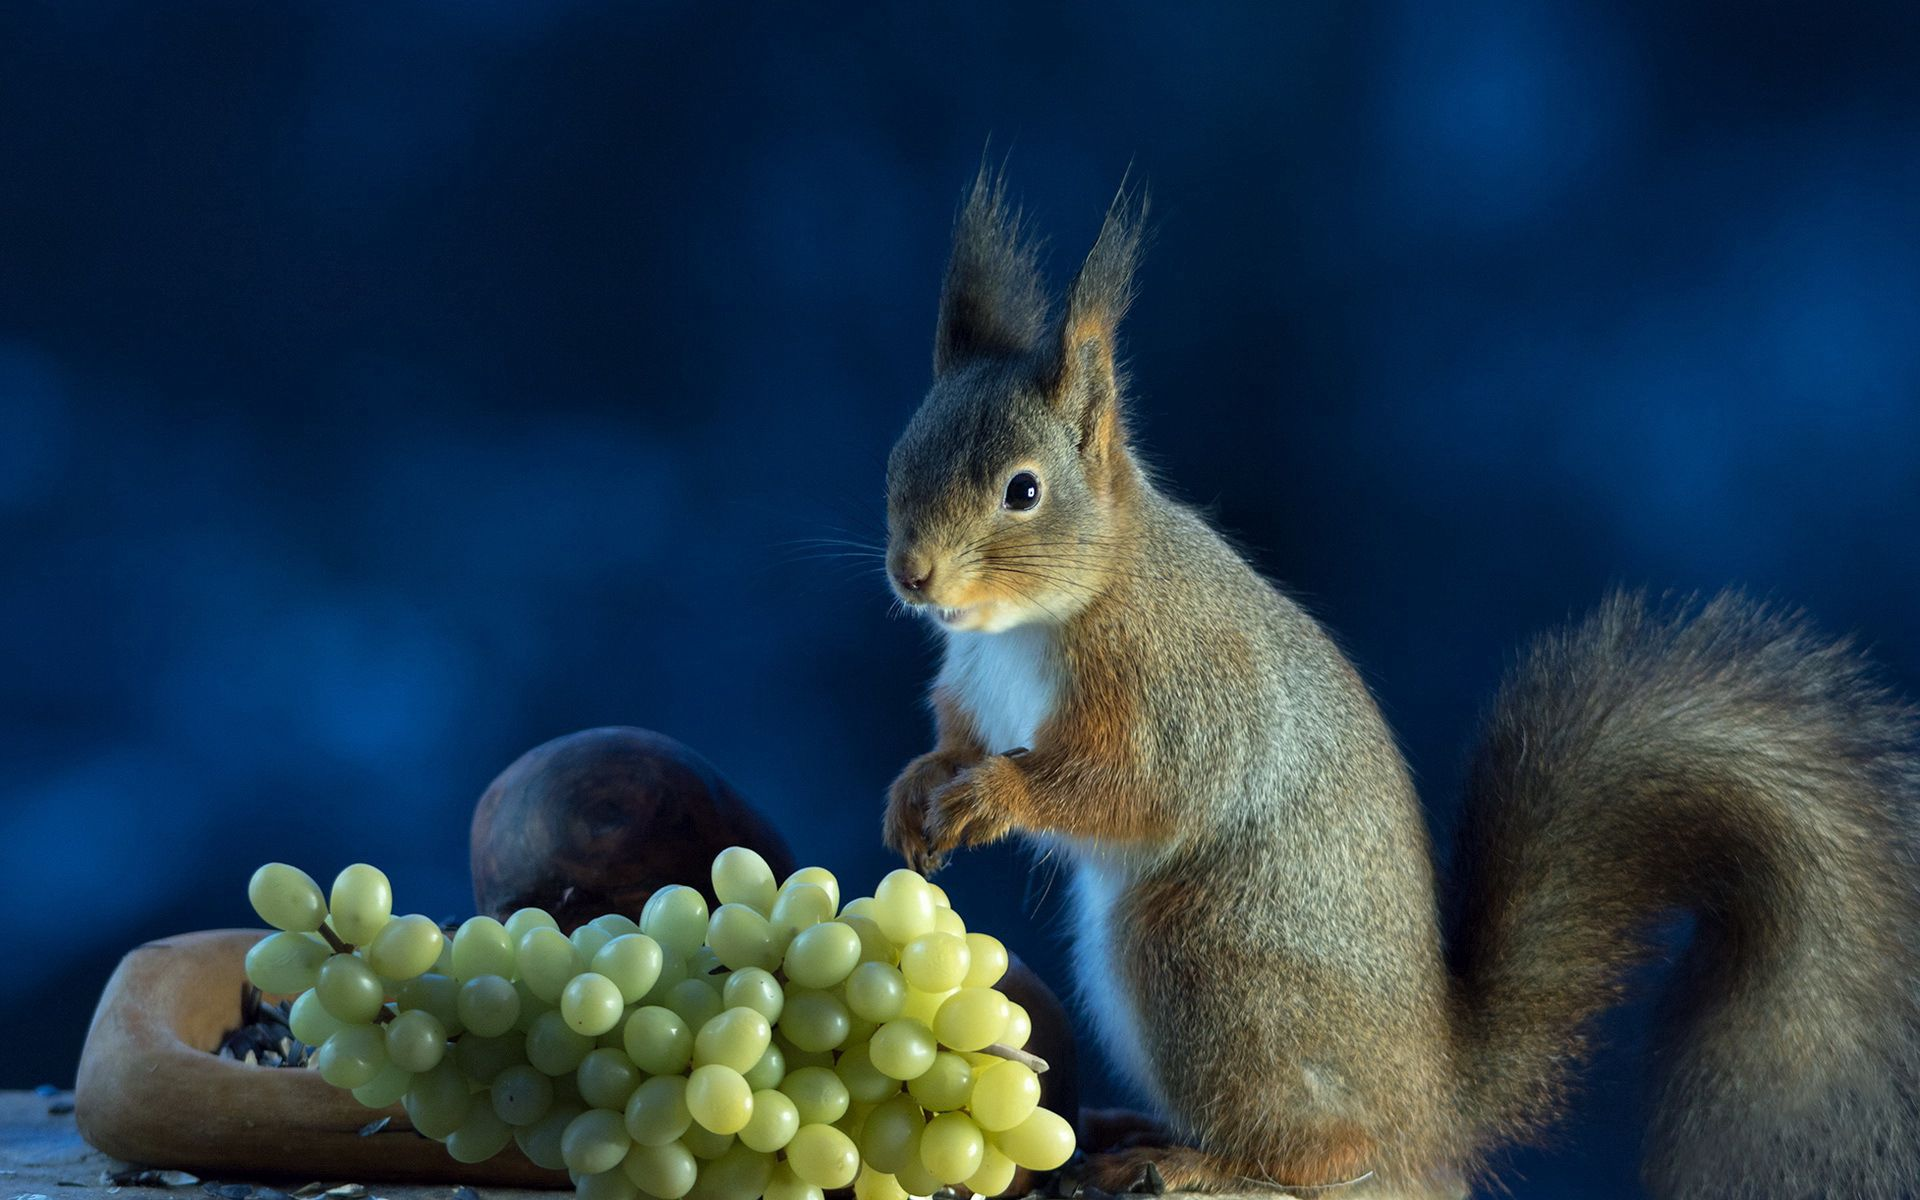 102812 download wallpaper Animals, Squirrel, Food, Grapes screensavers and pictures for free